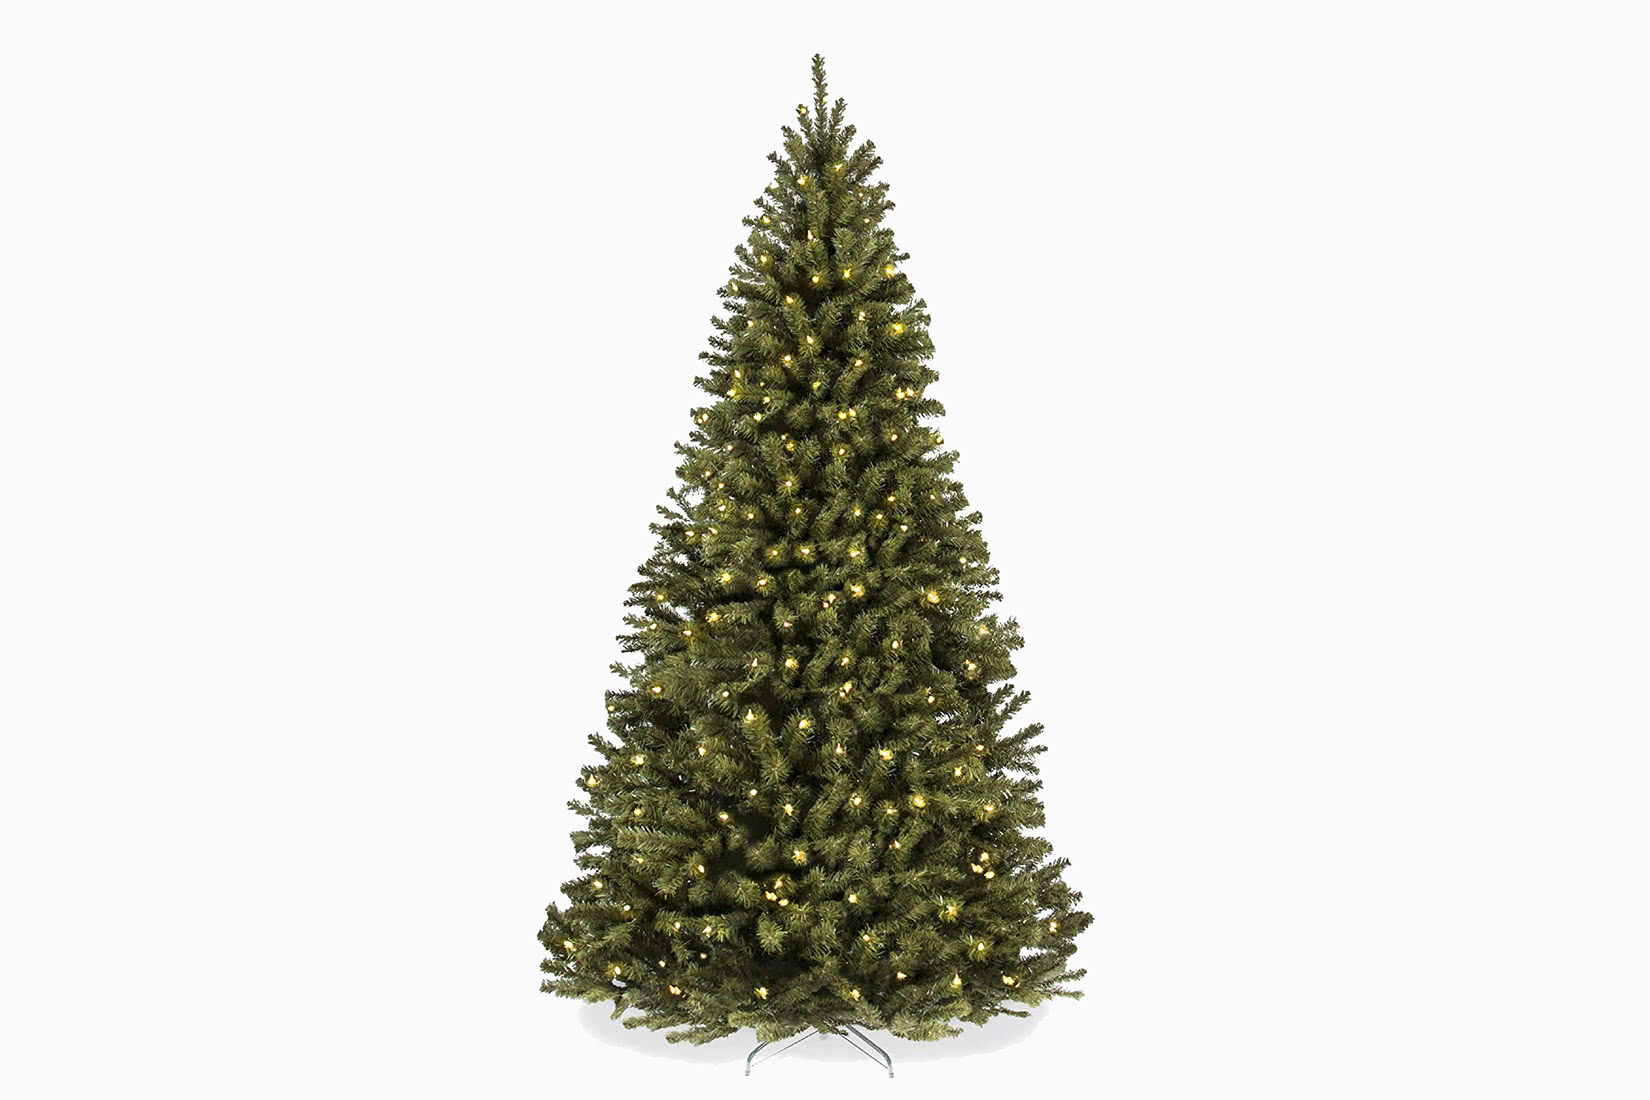 best artificial Christmas tree budget choice review - Luxe Digital